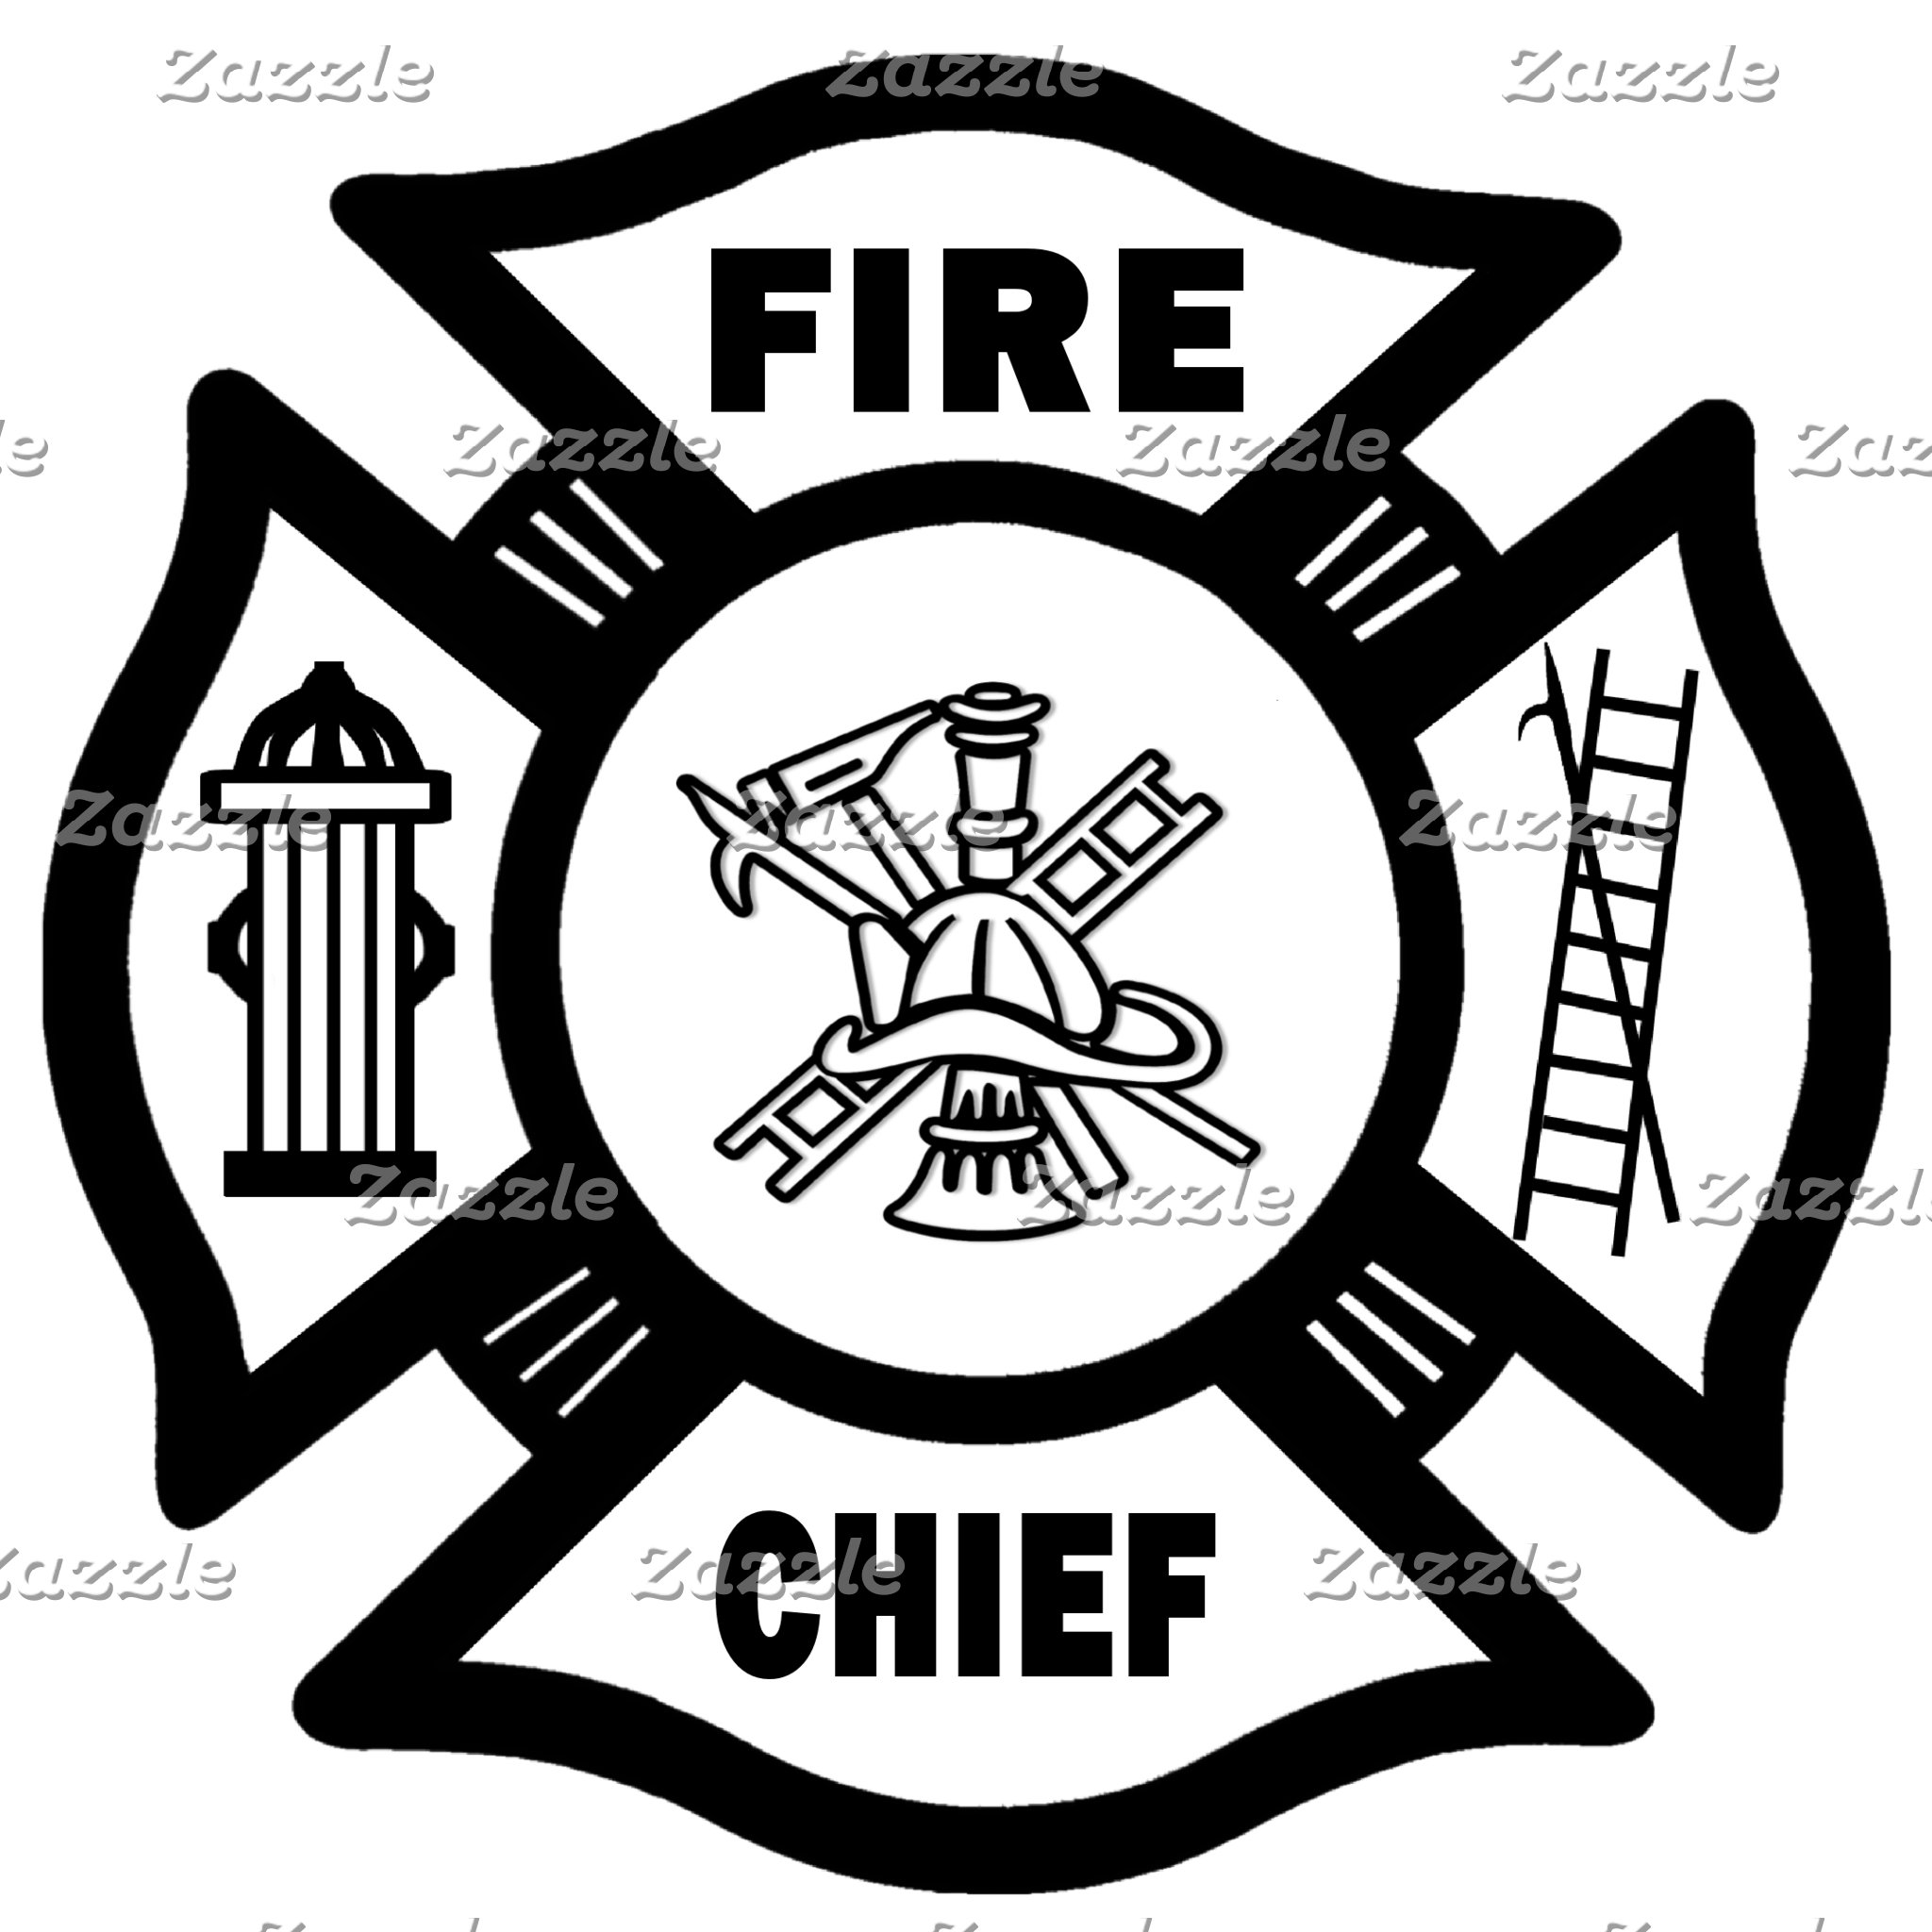 Fire Department Christmas Gifts